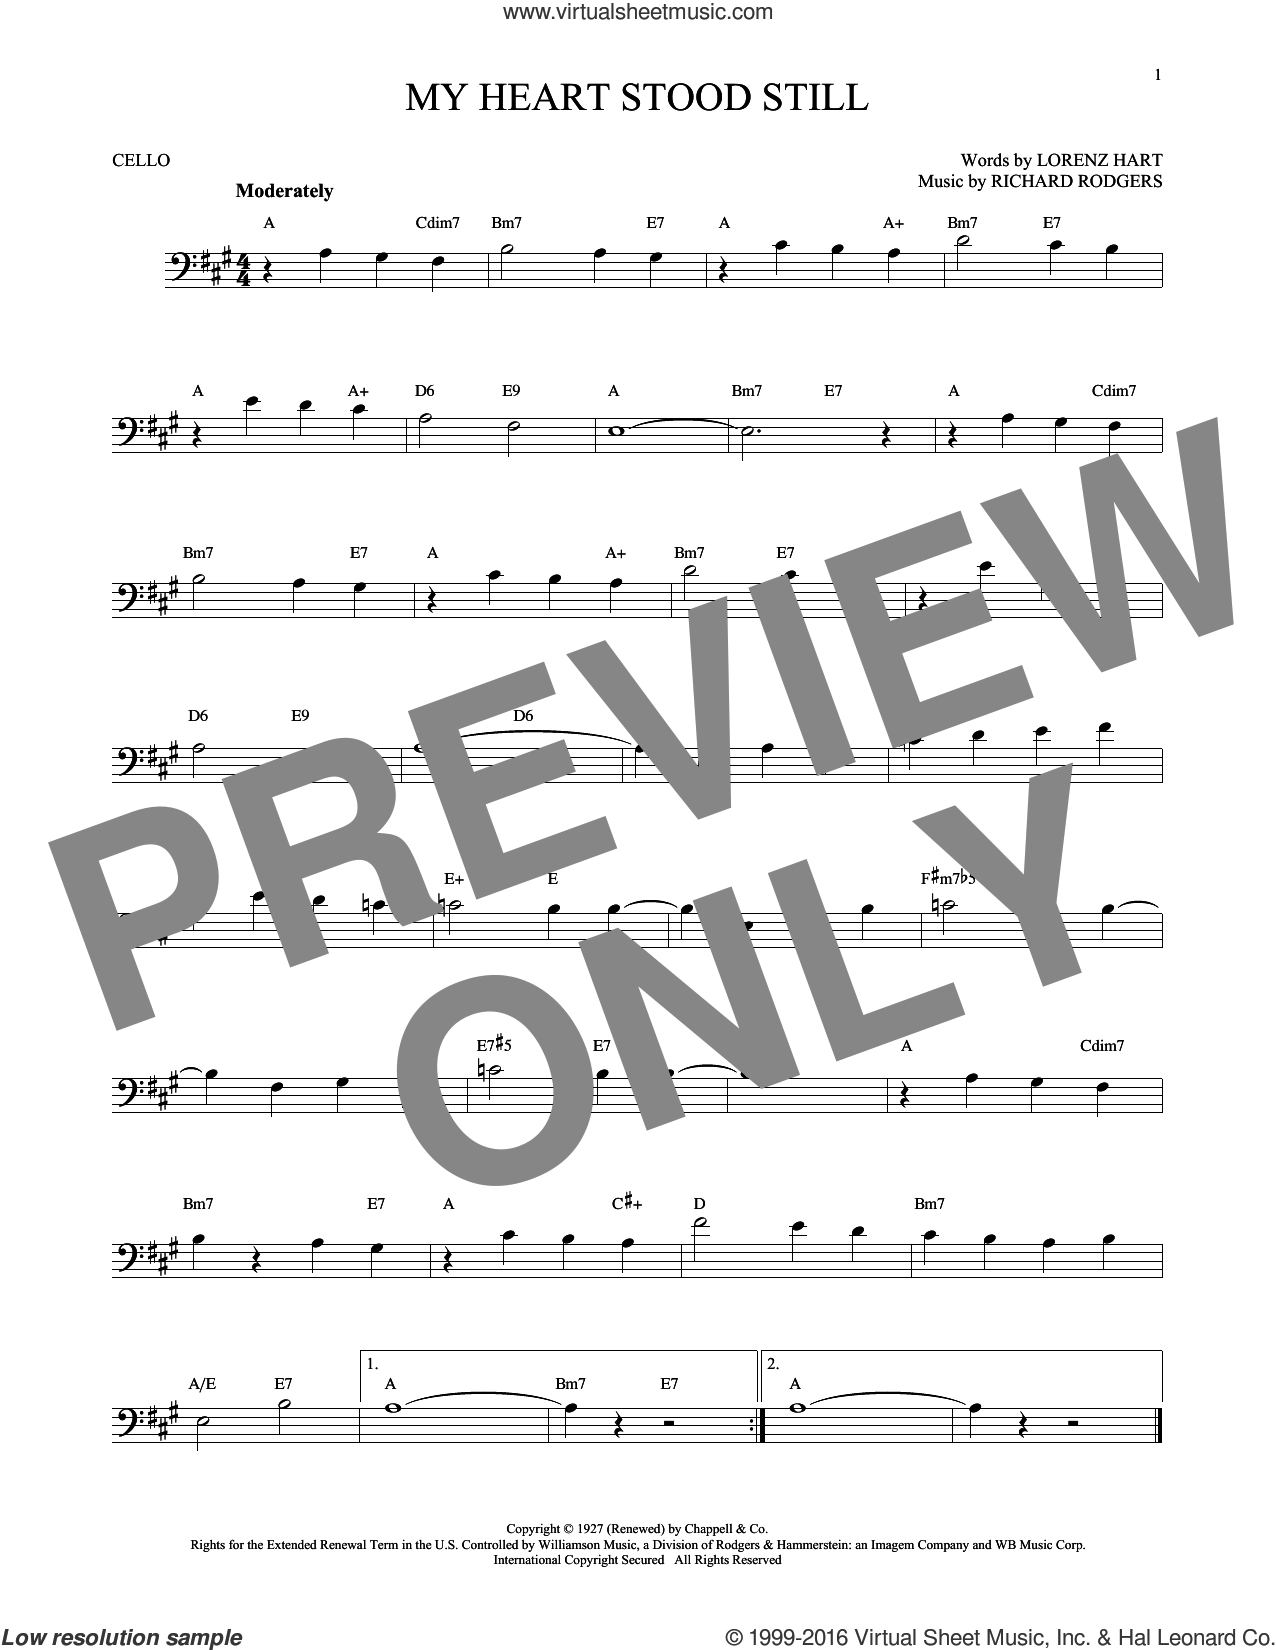 My Heart Stood Still sheet music for cello solo by Rodgers & Hart, Artie Shaw, Stan Getz, Lorenz Hart and Richard Rodgers, intermediate skill level